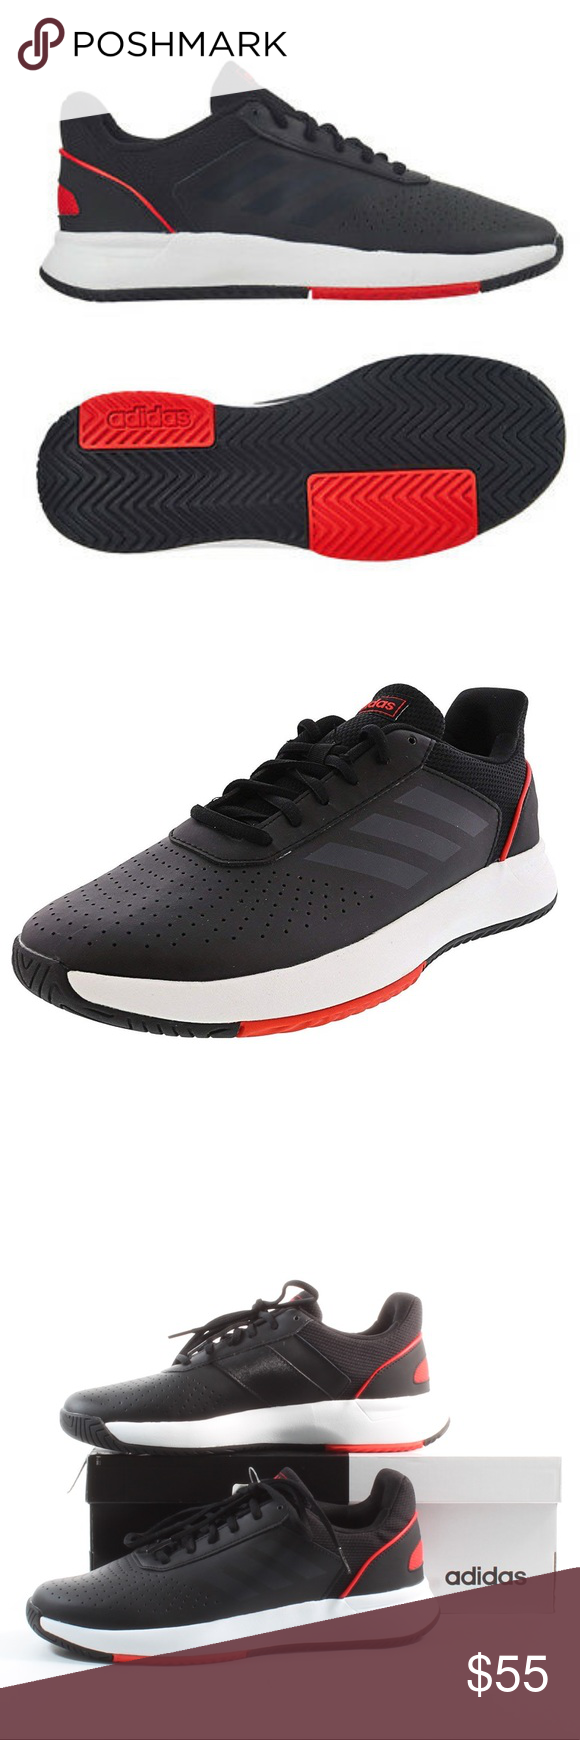 Men S Adidas Courtsmash Tennis Shoes Black New Men S Adidas Courtsmash Tennis Shoes Brand New In The Box 100 Black Shoes Shoe Brands Designer Shoes